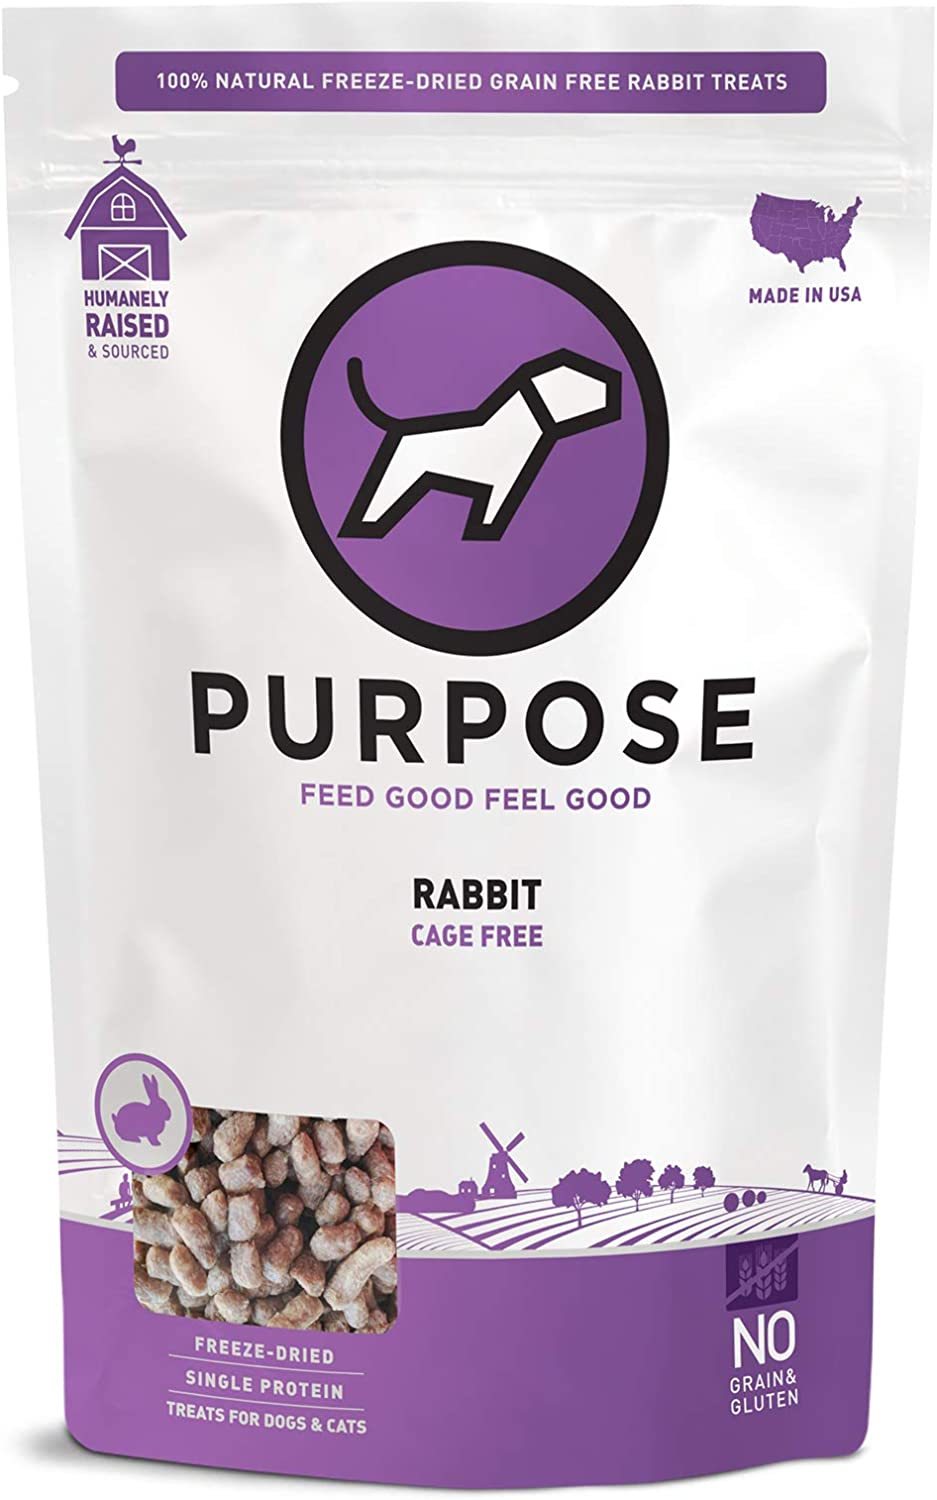 PURPOSE Freeze Dried All-Natural Grain-Free Raw Rabbit Dog Treats 2.5 oz. | Made in The USA | for Dogs & Cats